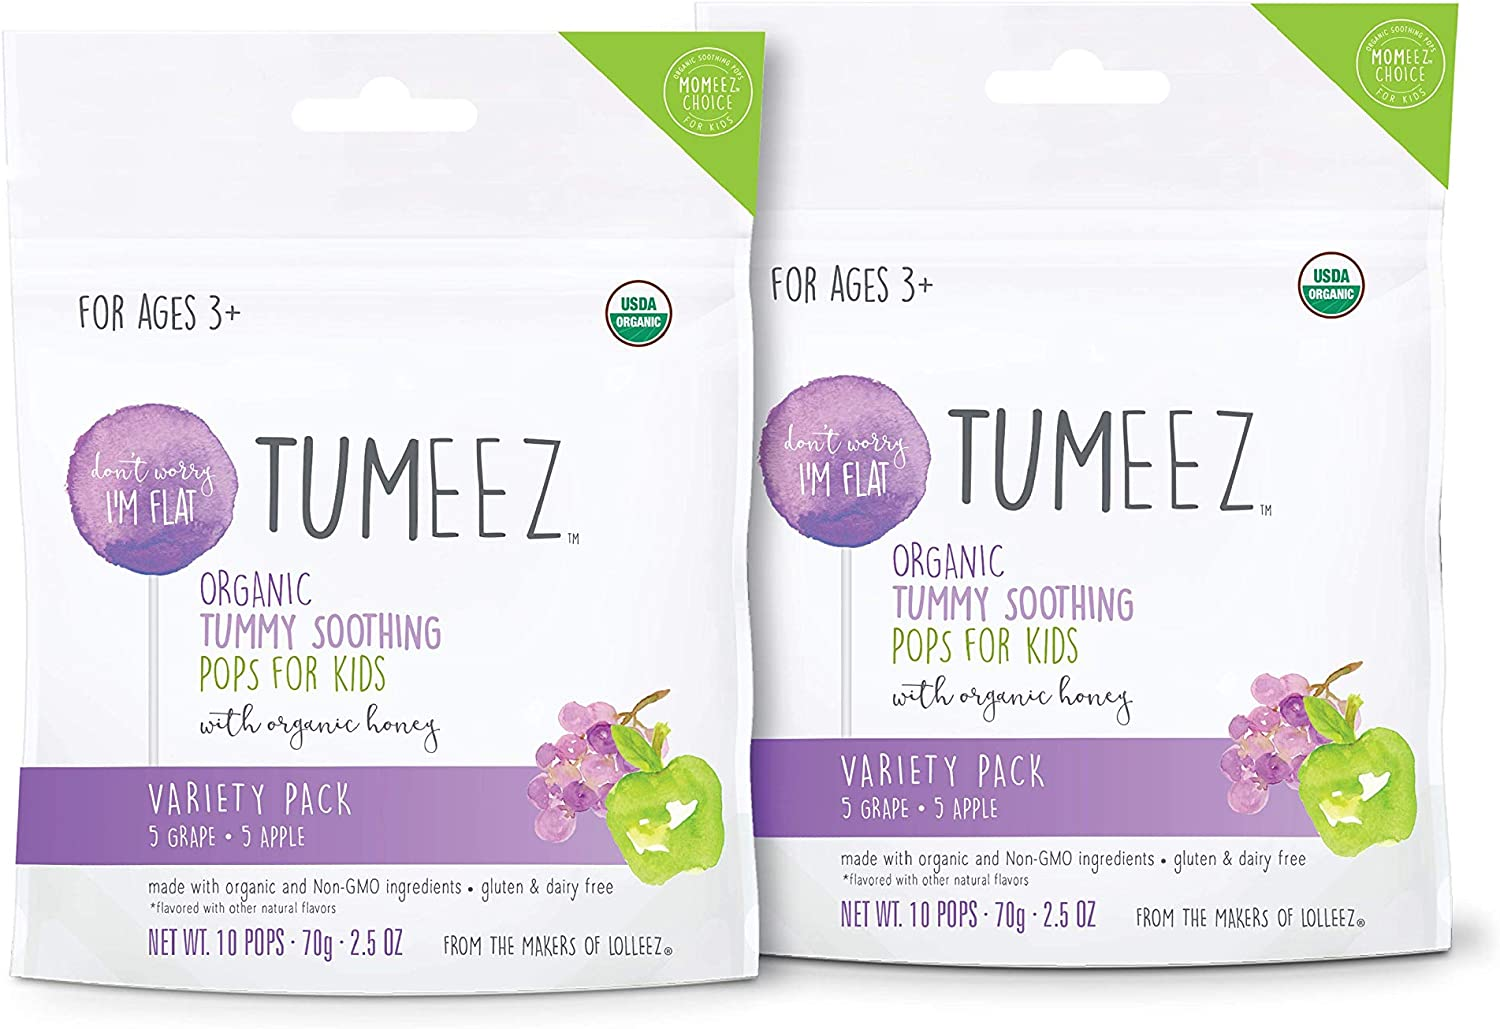 Tumeez Organic Tummy Soothing Pop for Kids (2 Pack)